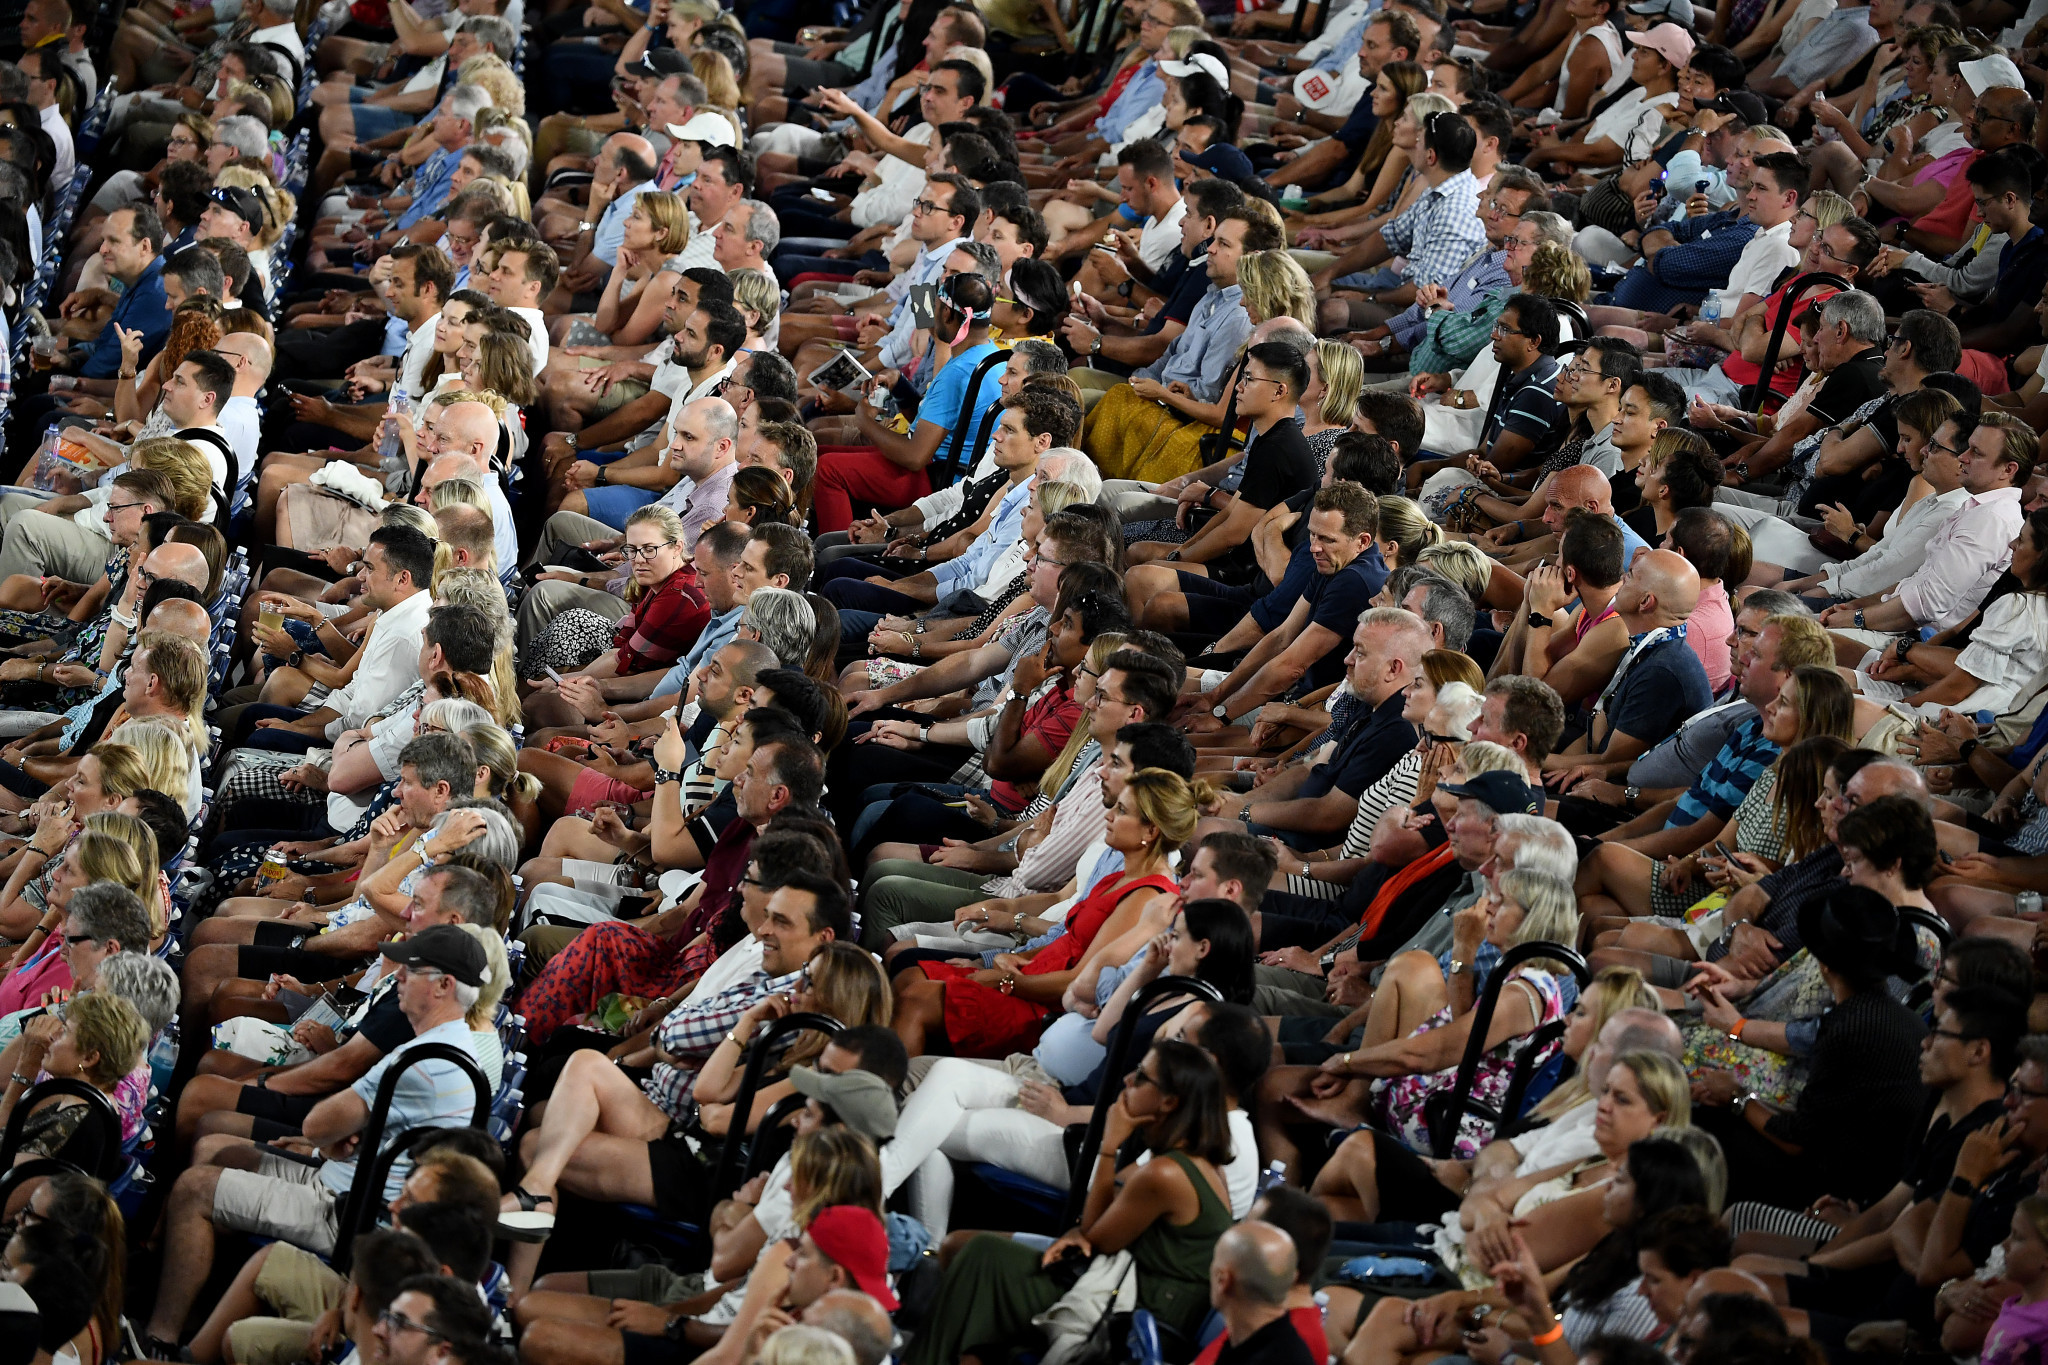 A packed crowd watched the match at the Rod Laver Arena ©Getty Images